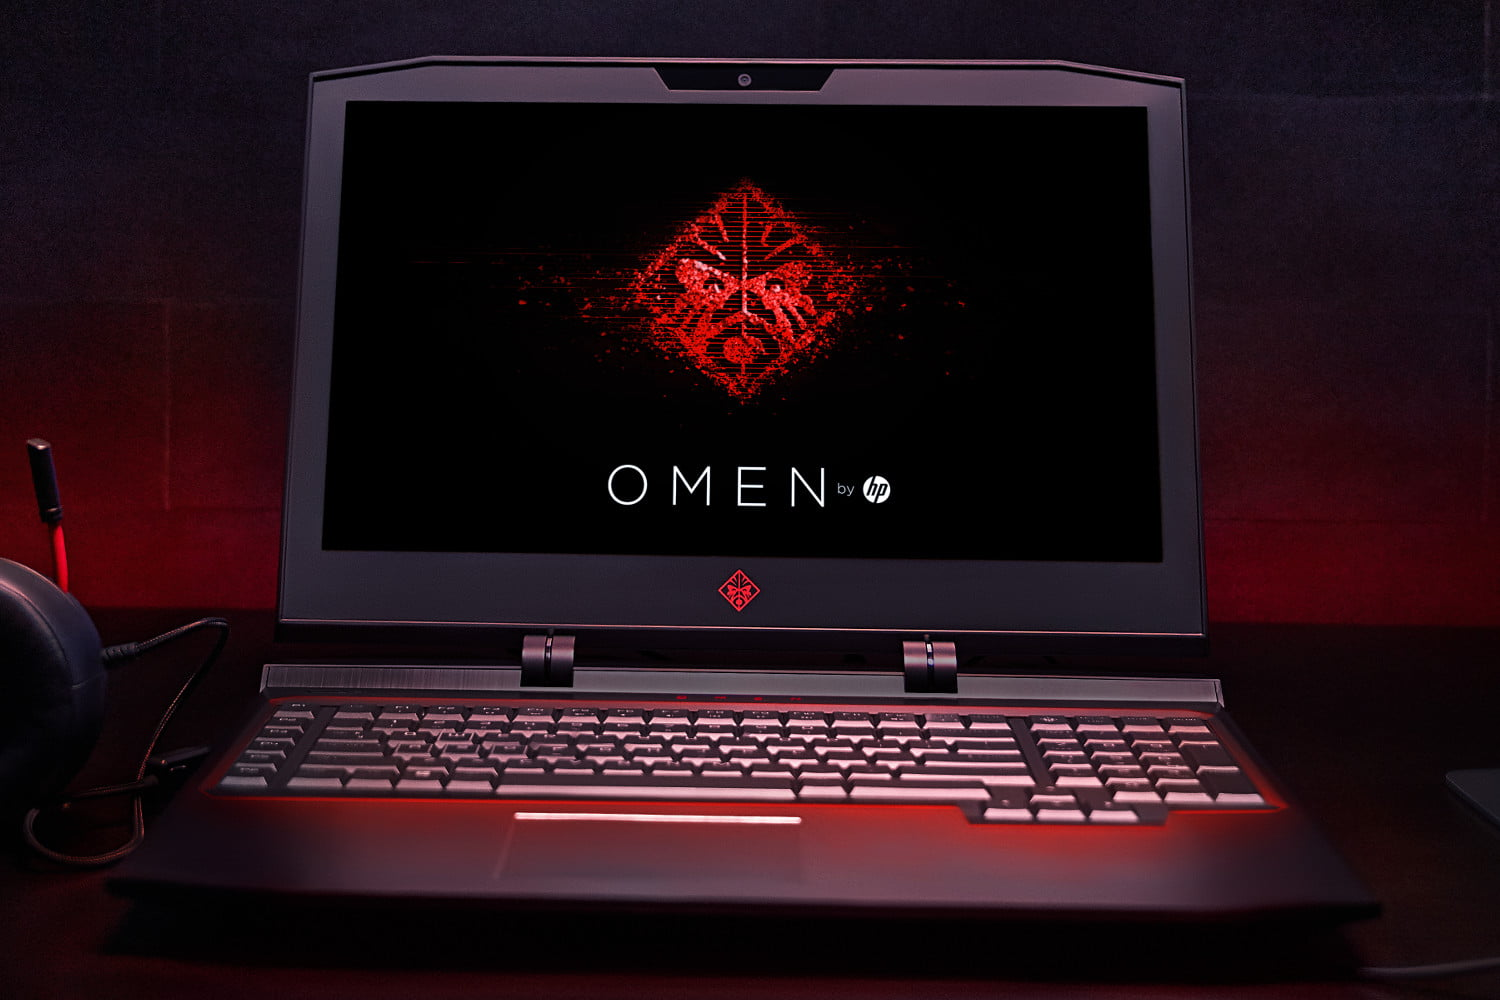 It's No Omen That HP's Omen X Gaming Laptop Arrives After The